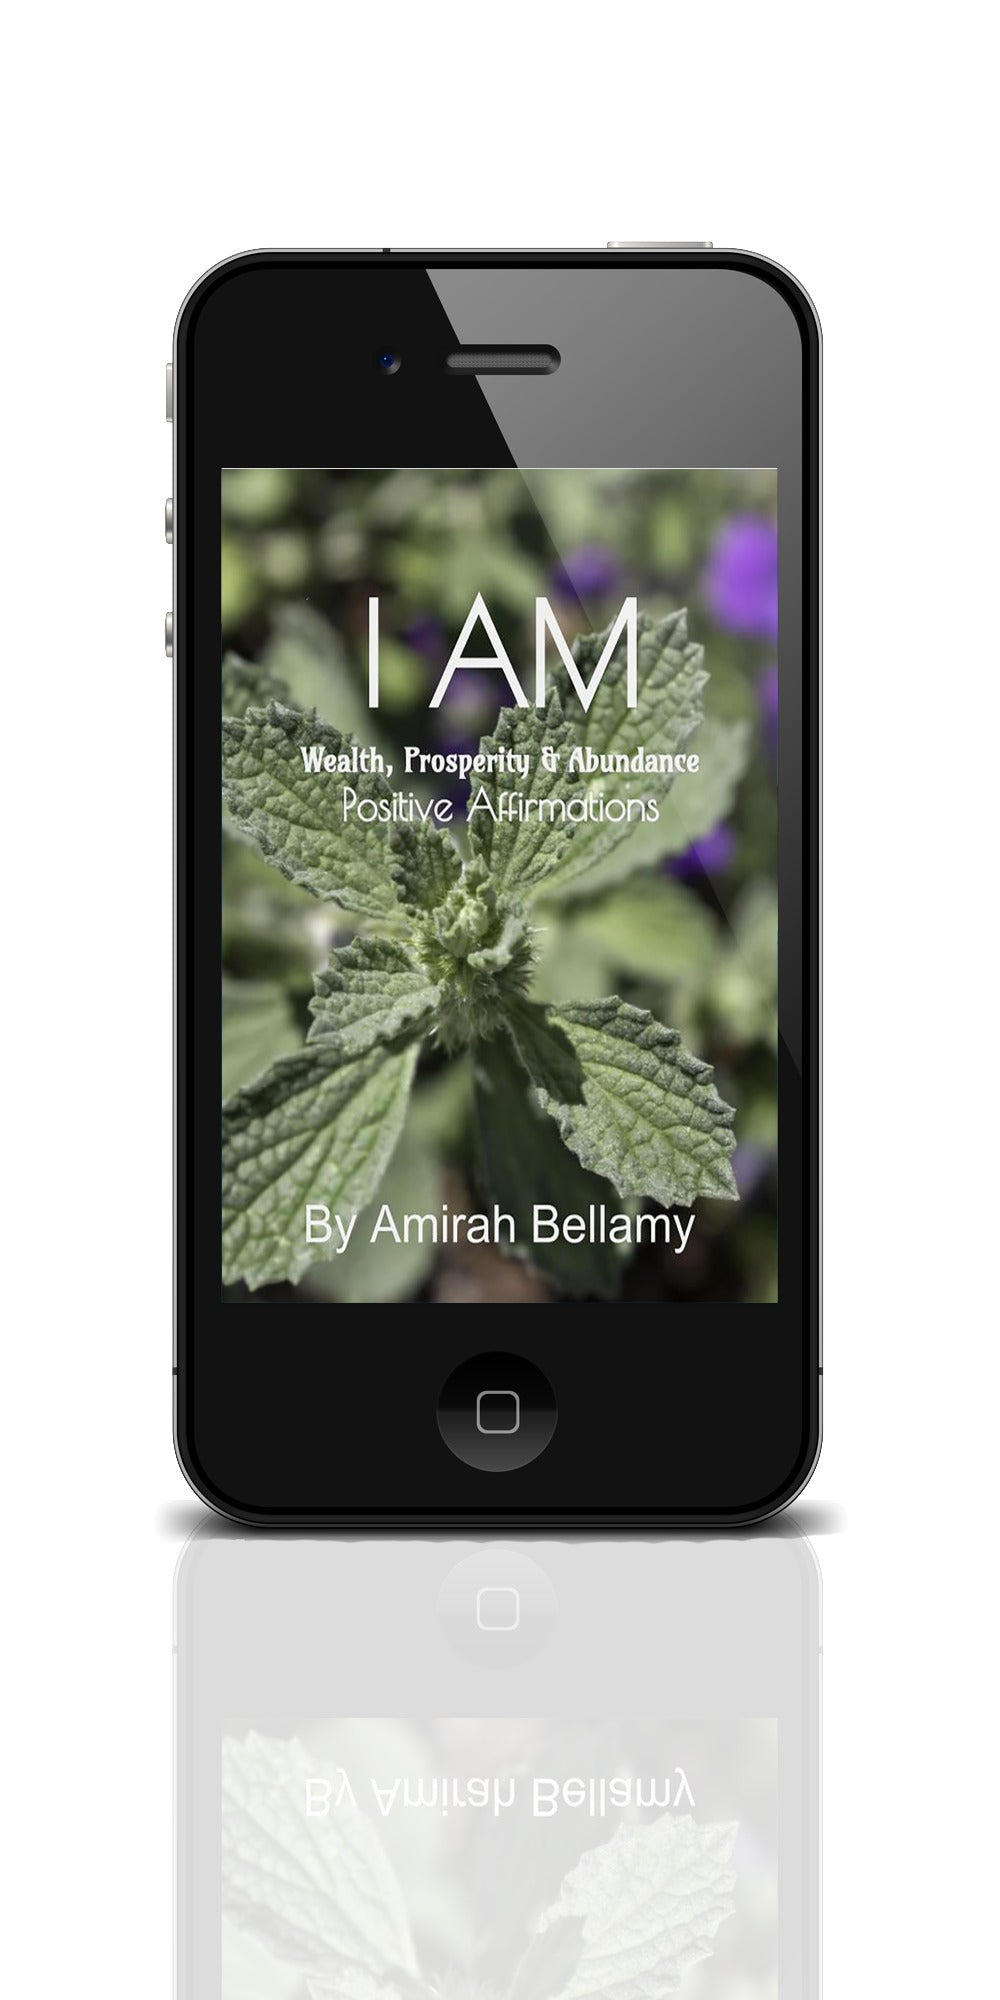 I AM Wealth, Prosperity & Abundance Positive Affirmations